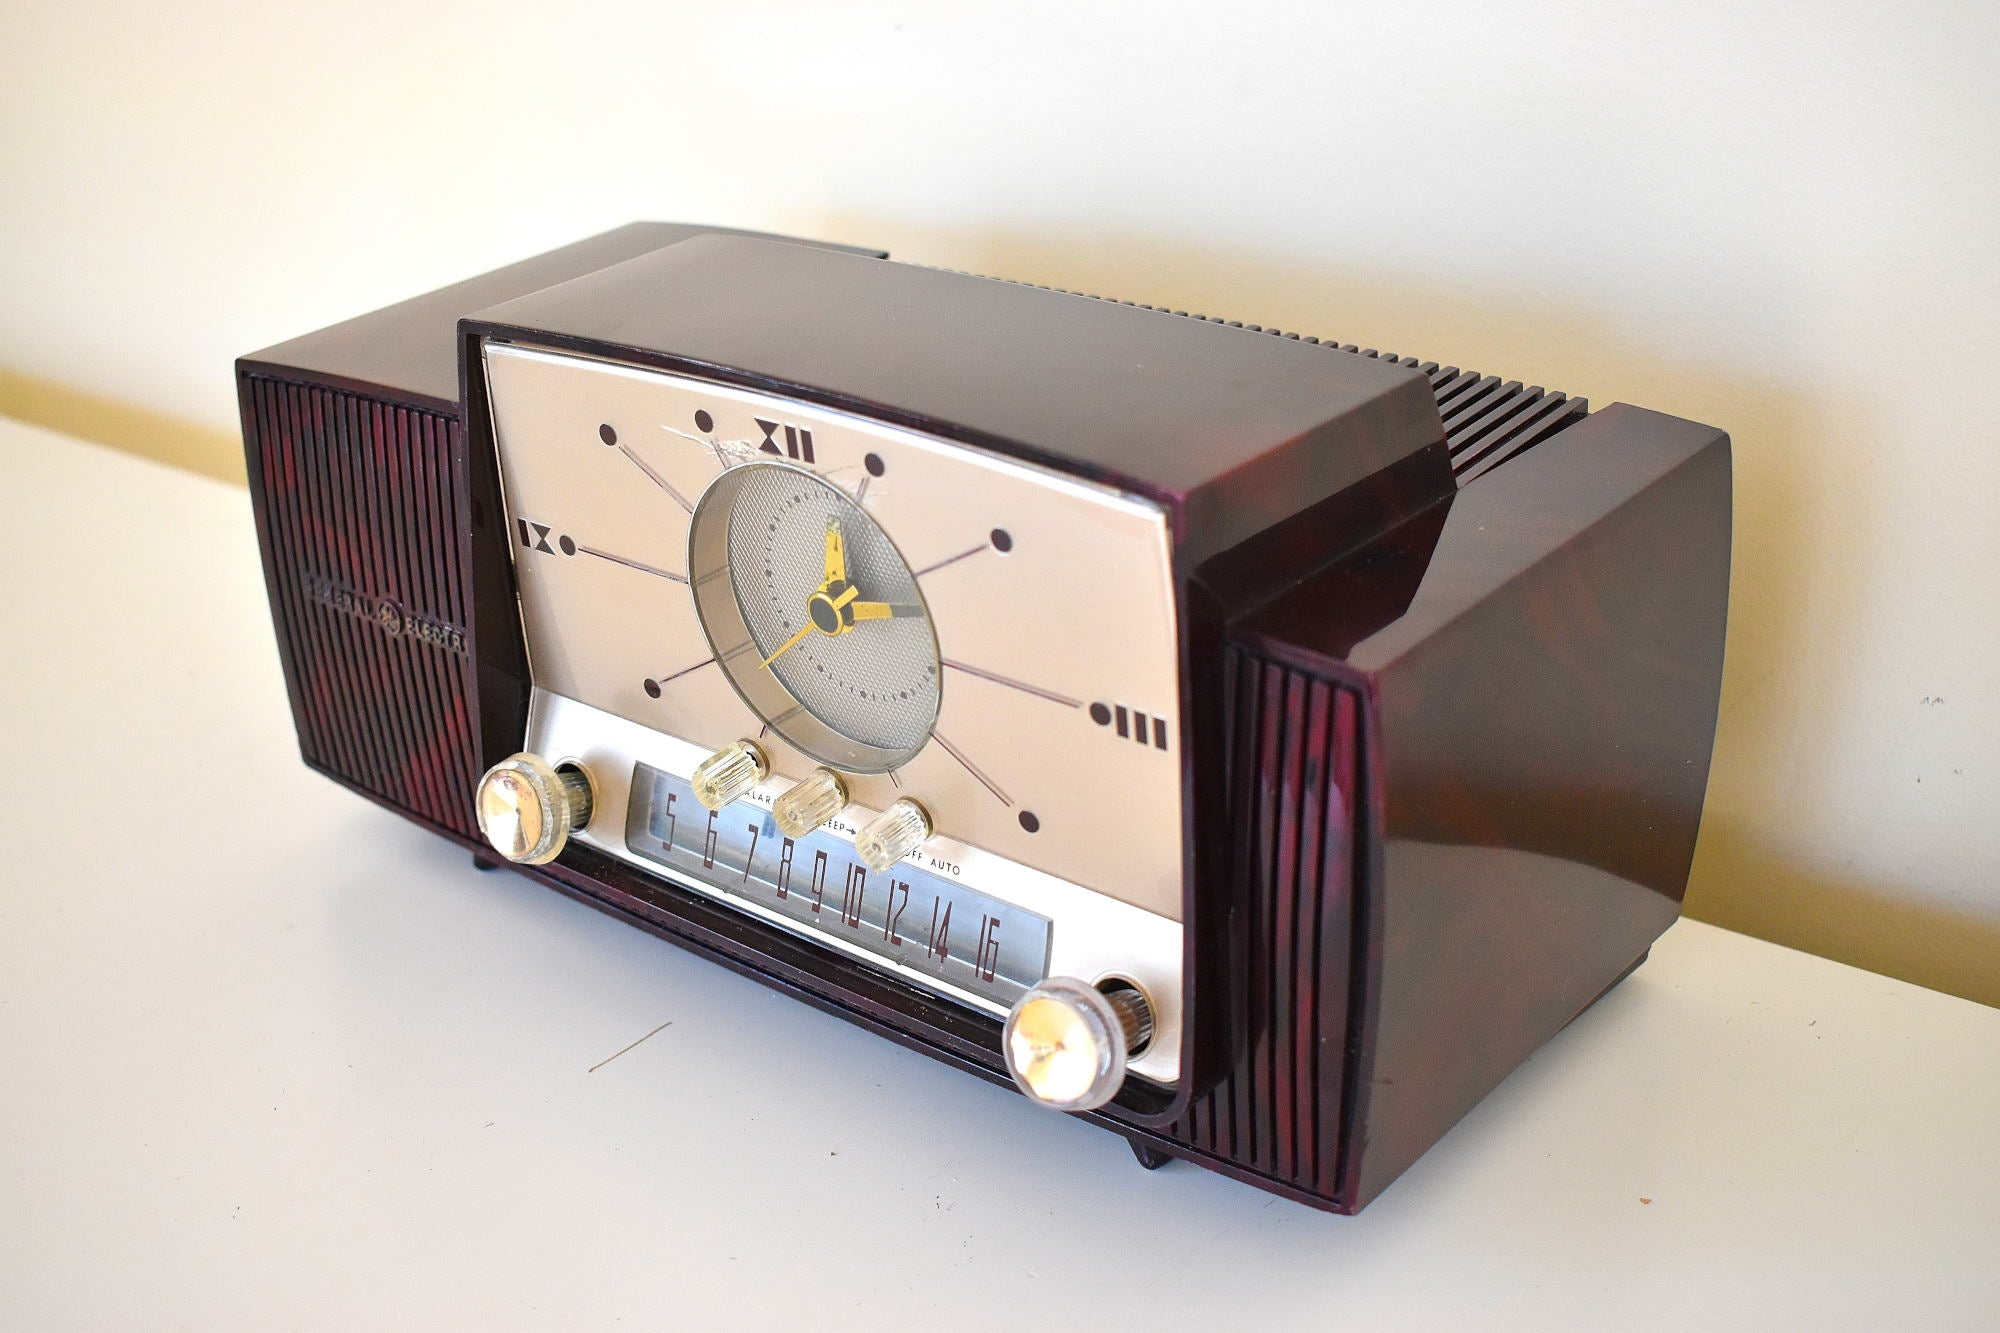 Burgundy Swirl Mid Century 1959 General Electric Model 913D Vacuum Tube AM Clock Radio Beauty Sounds Fantastic!